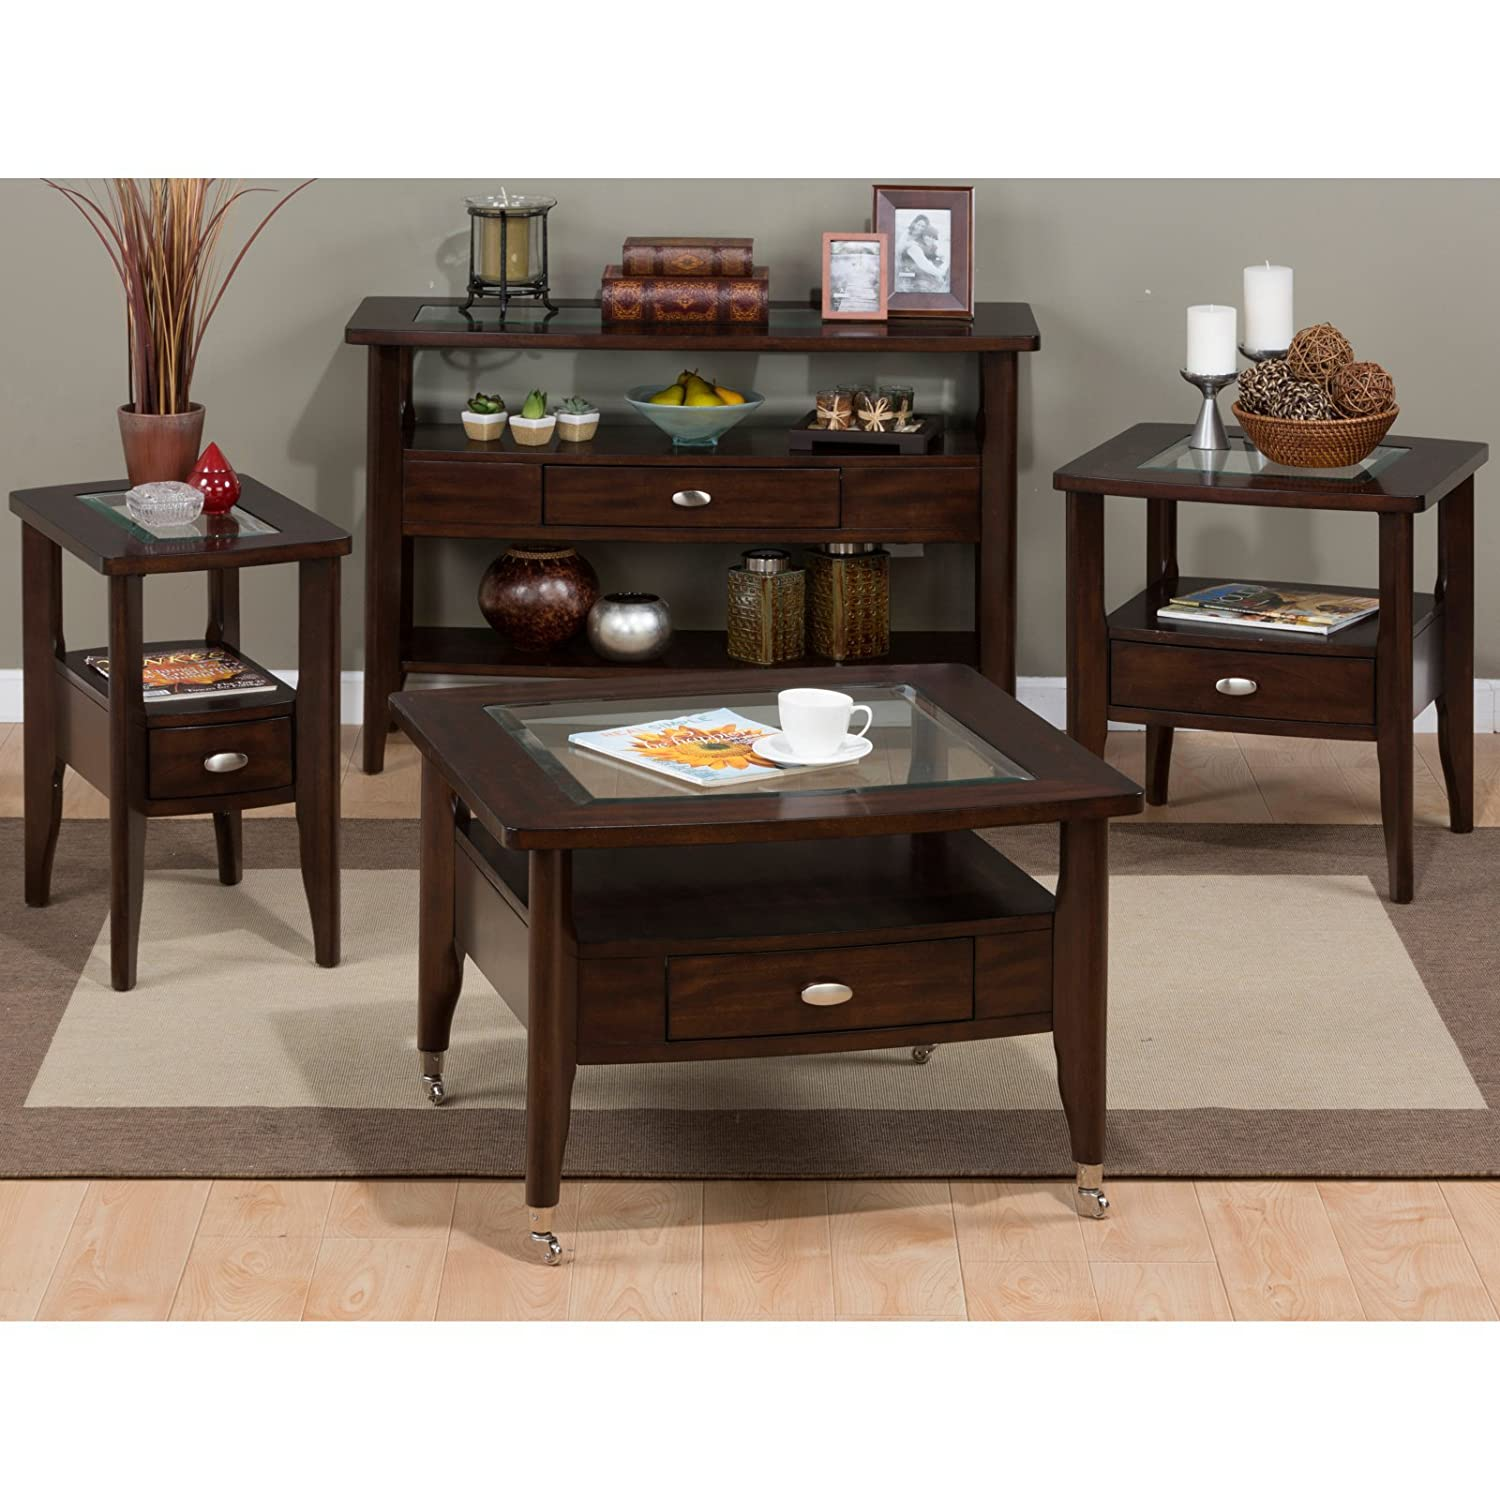 Amazon.com: Jofran Montego Sofa Table - Montego Merlot: Kitchen & Dining